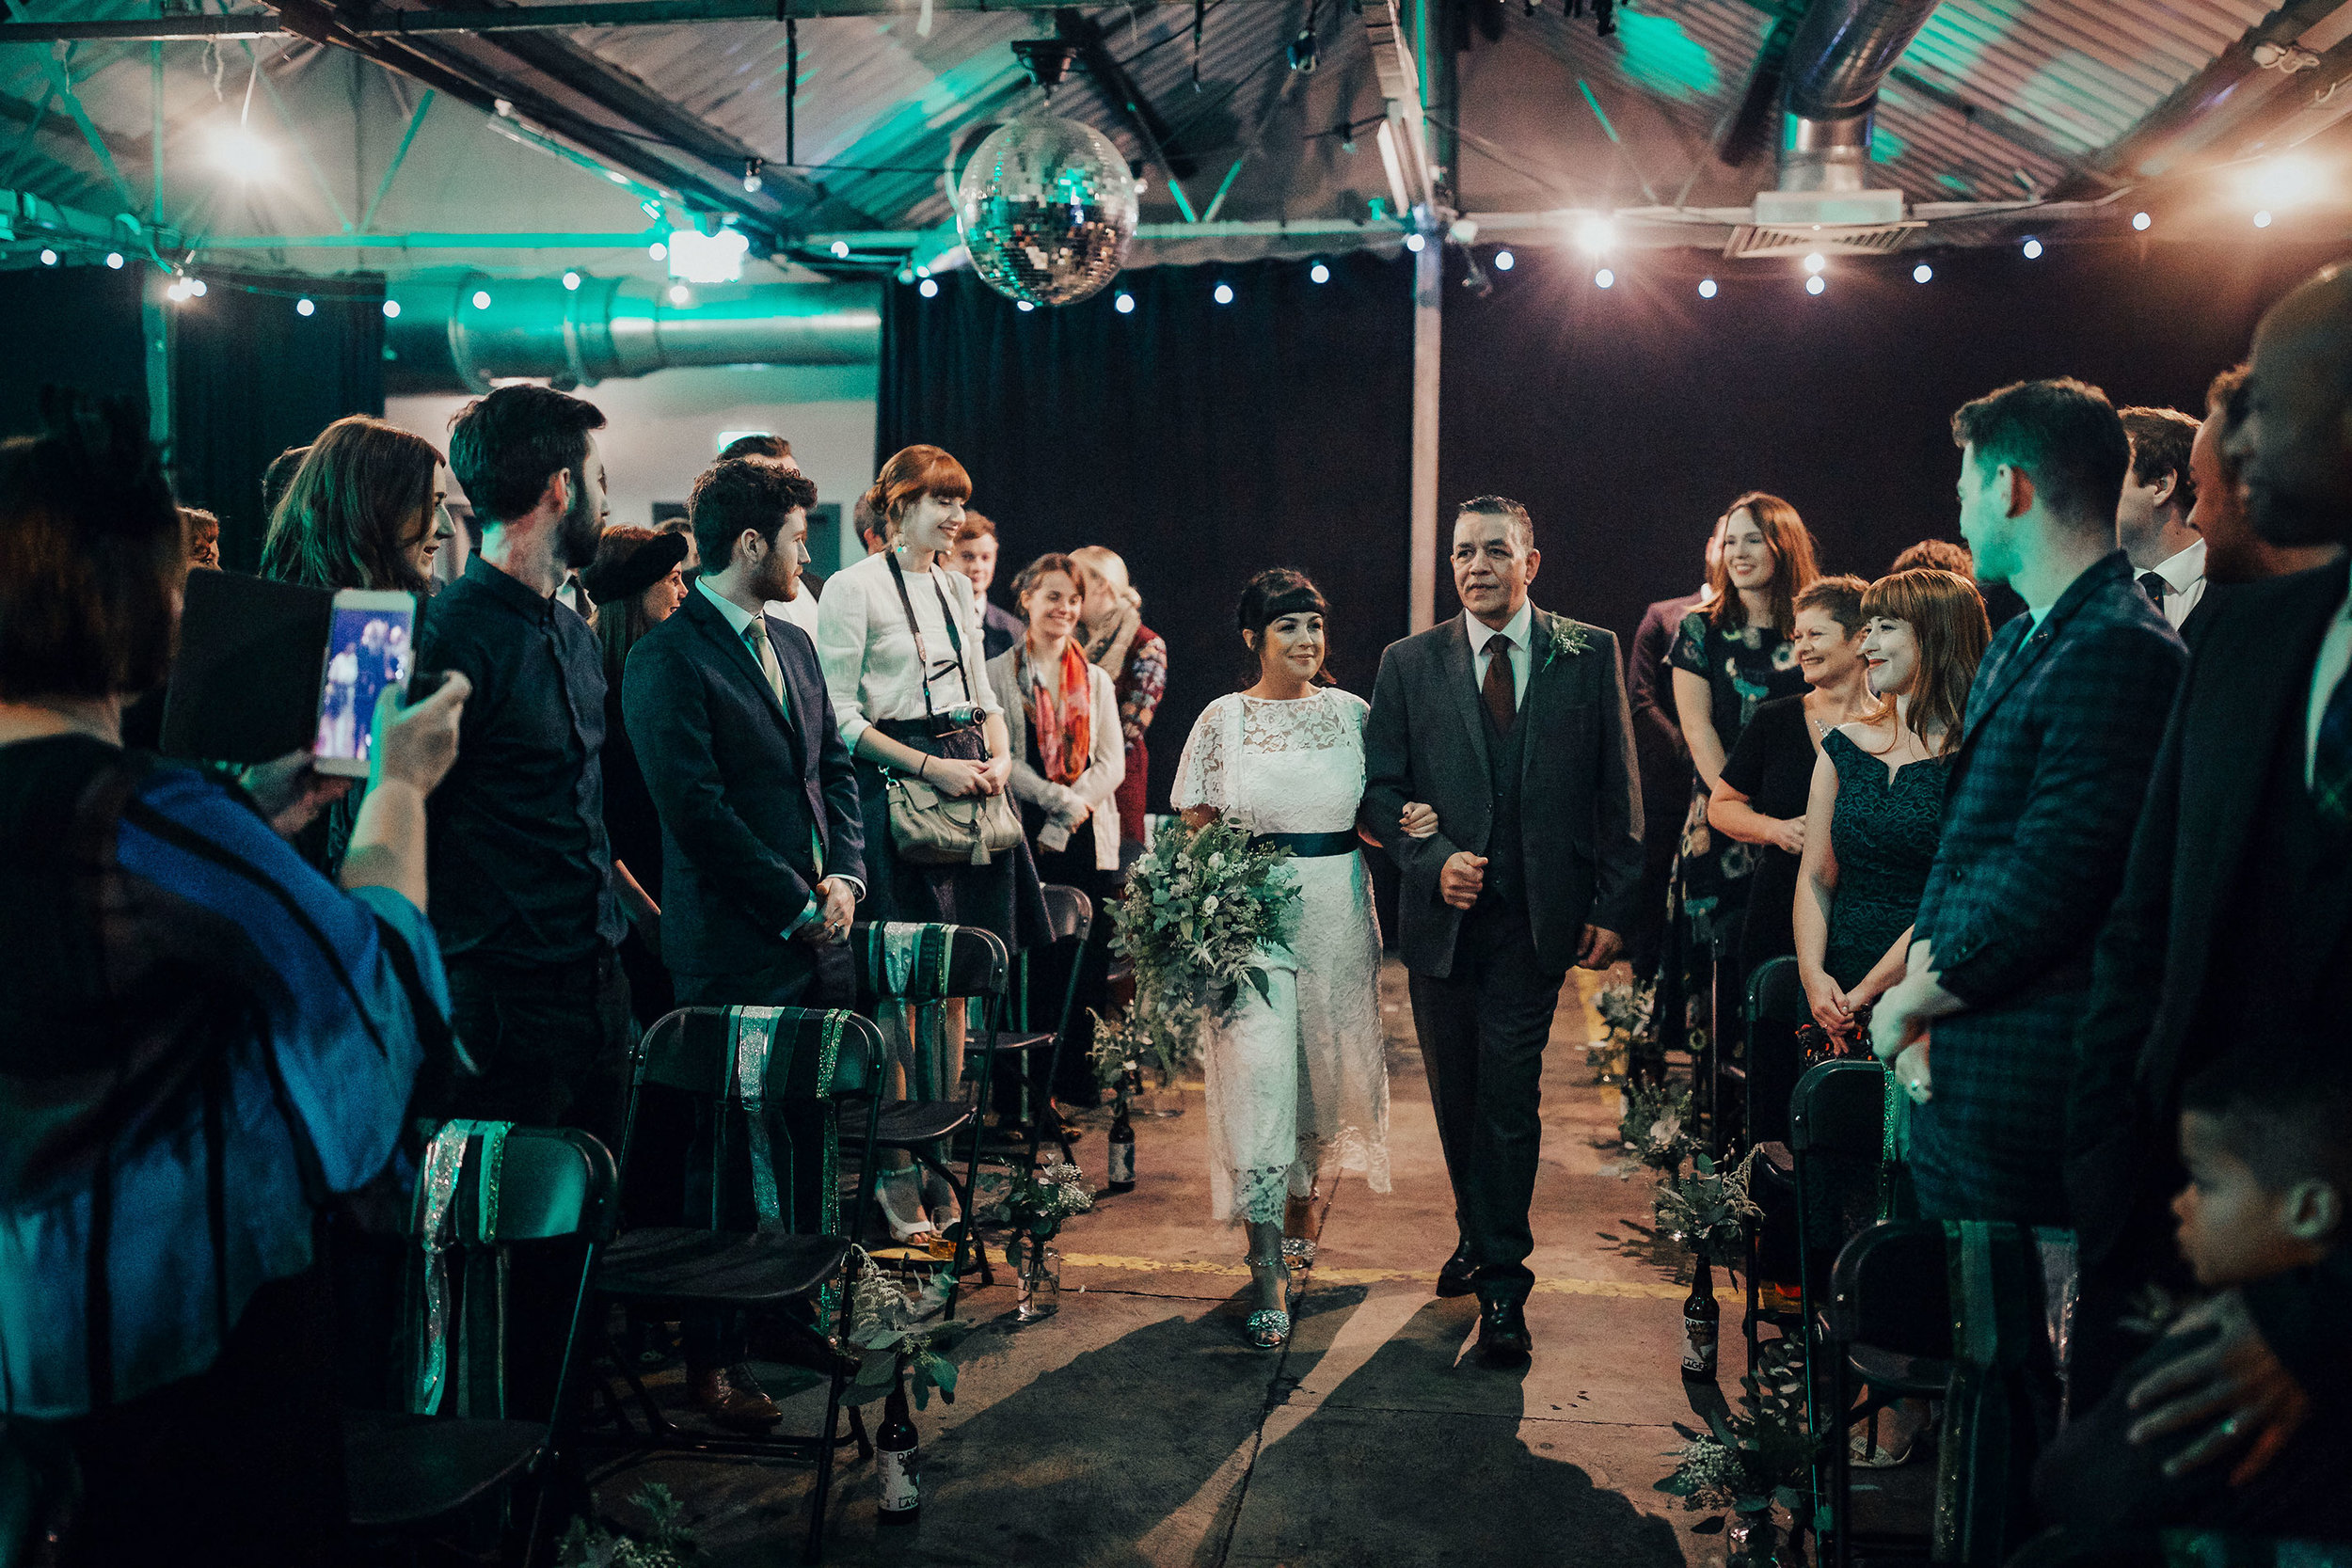 DRYGATE_WEDDING_PHOTOGRAPHER_PJ_PHILLIPS_WEDDING_PHOTOGRAPHY_40.jpg